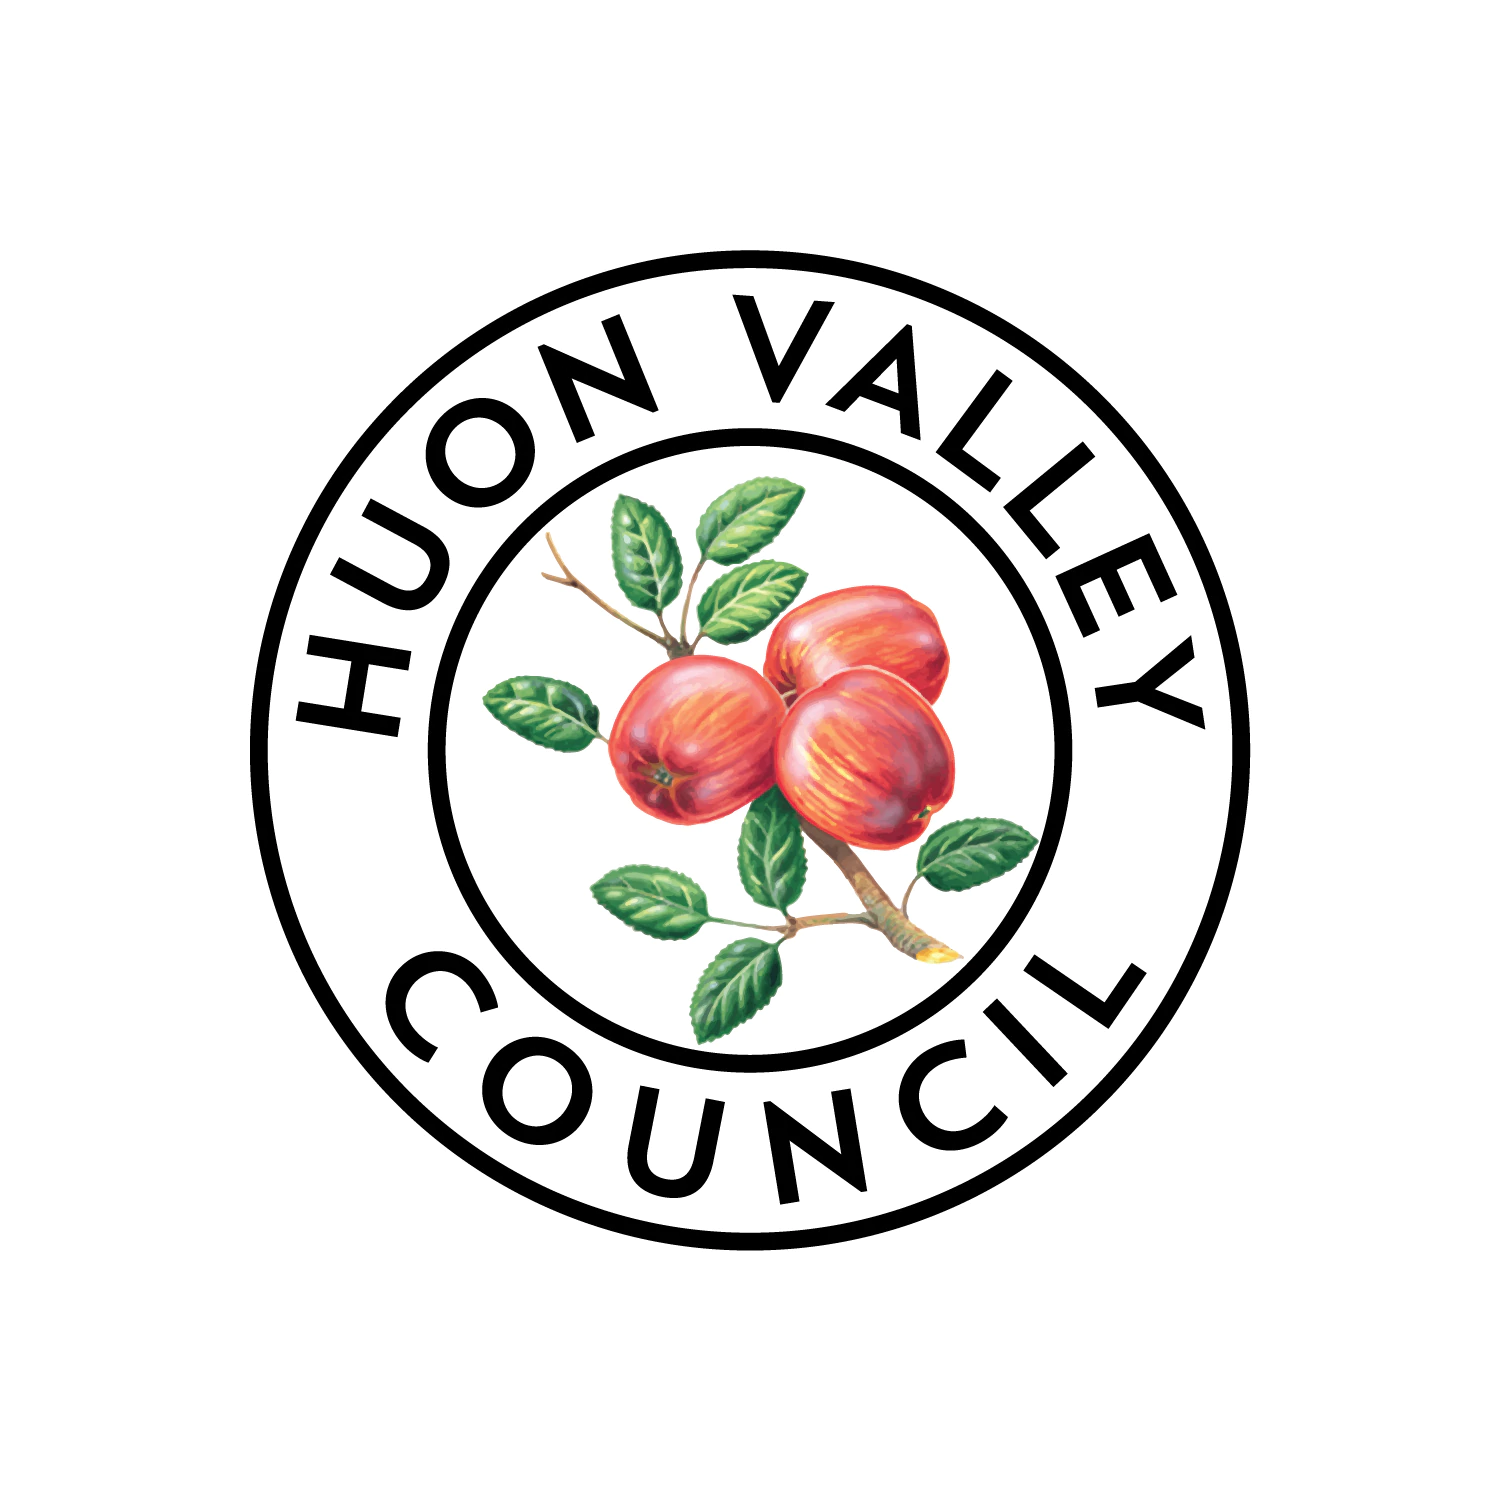 huon valley council logo